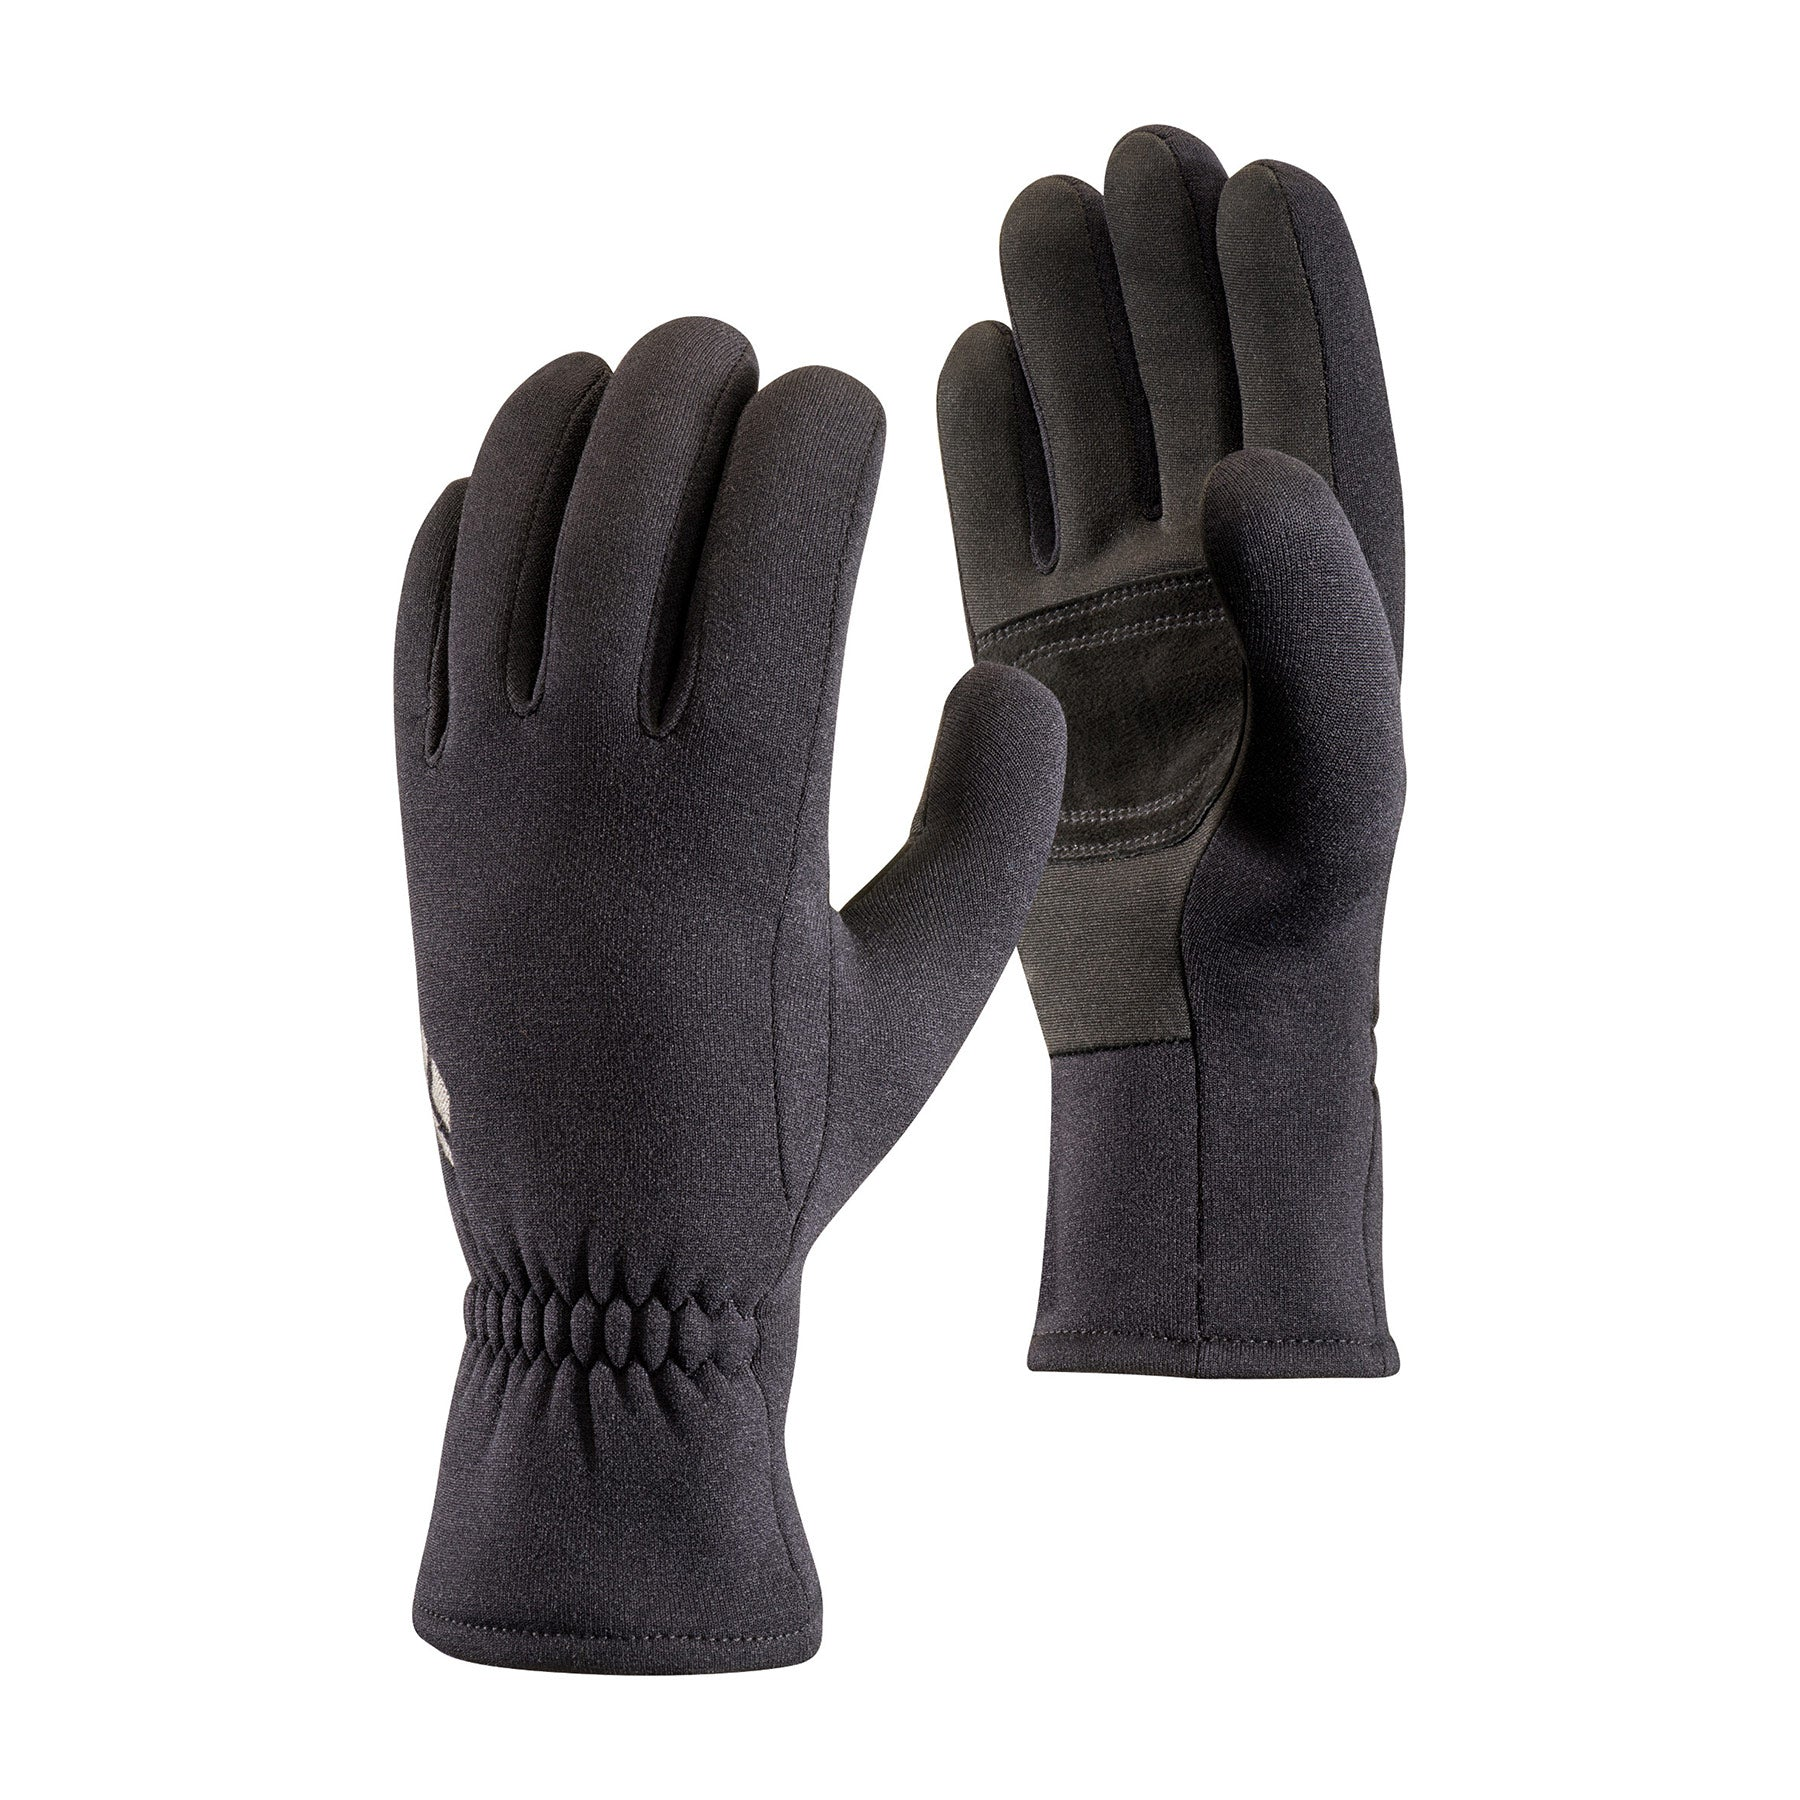 a pair of midweight liner gloves